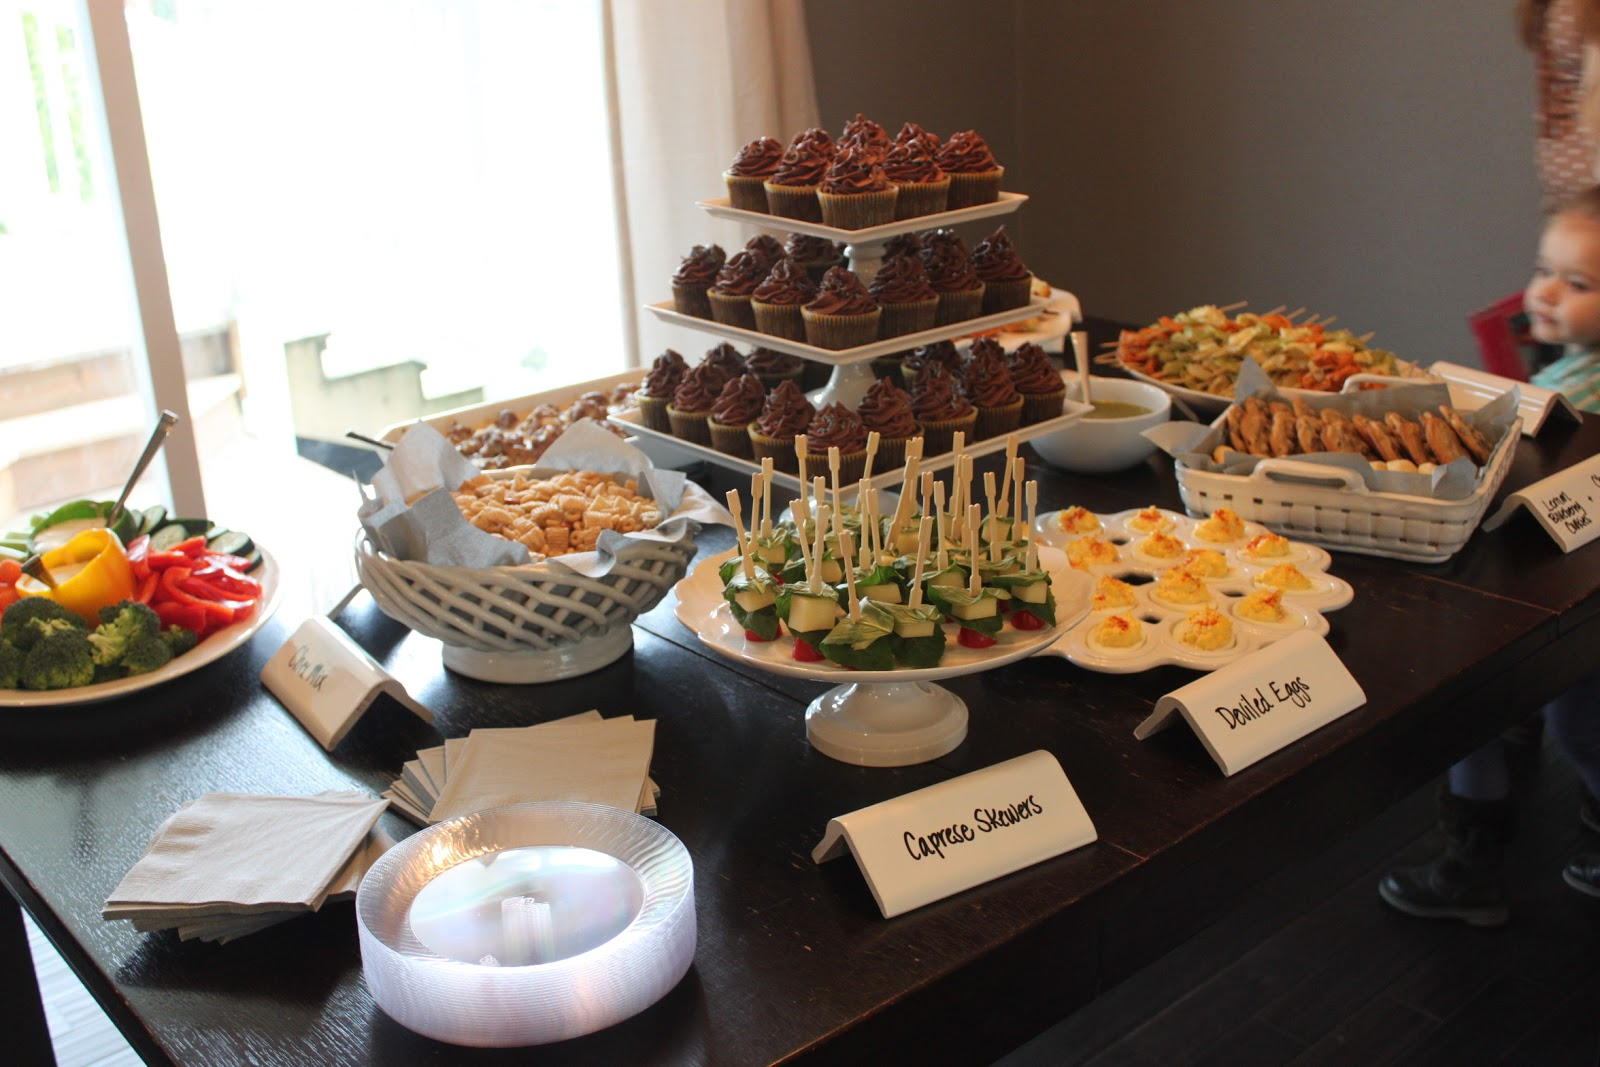 House warming party food ideas for Decorations for a home